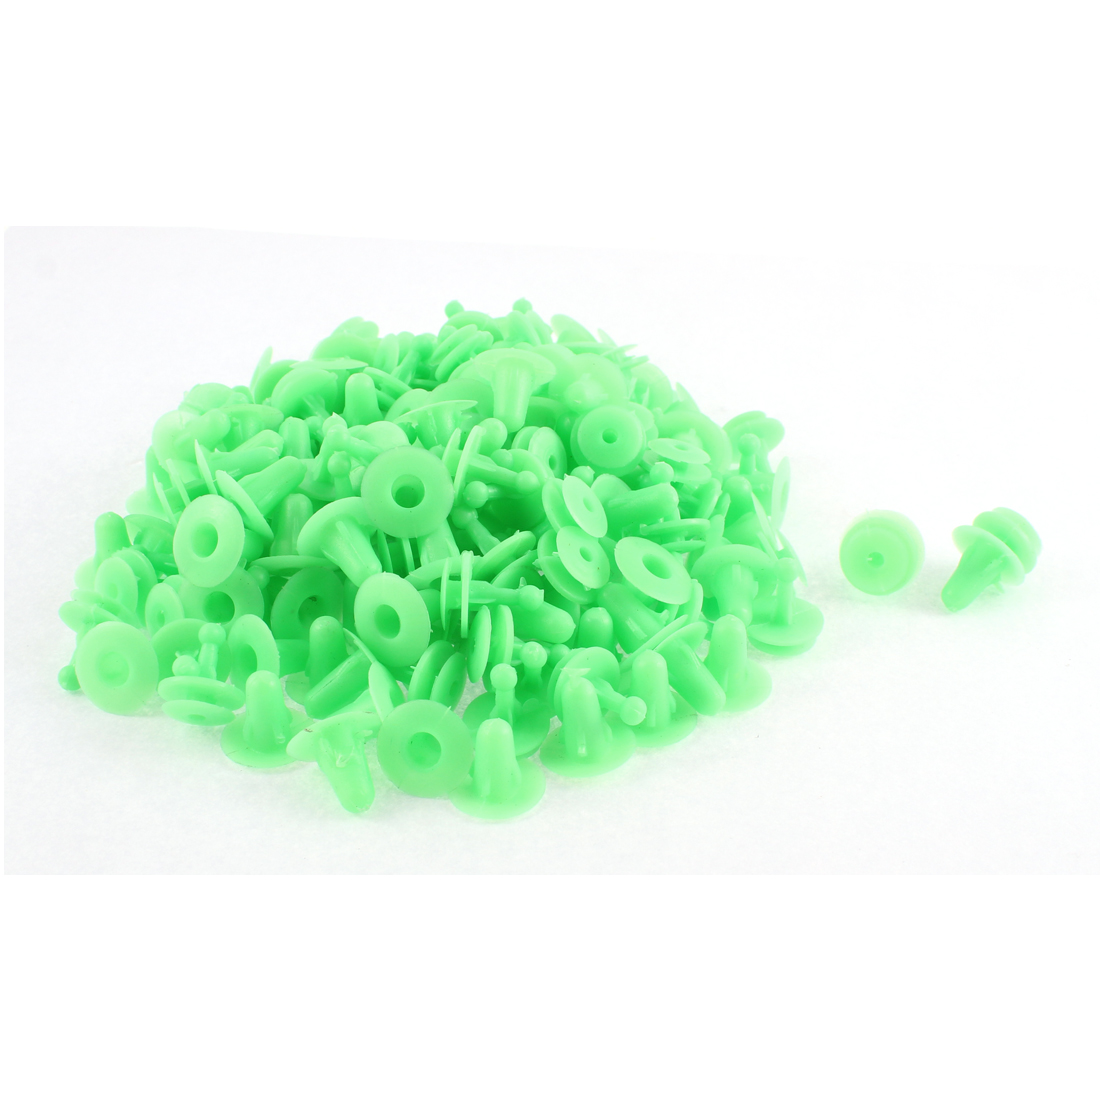 100 Pcs Green Plastic Push-Type Moulding Trim Panel Hood Rivet